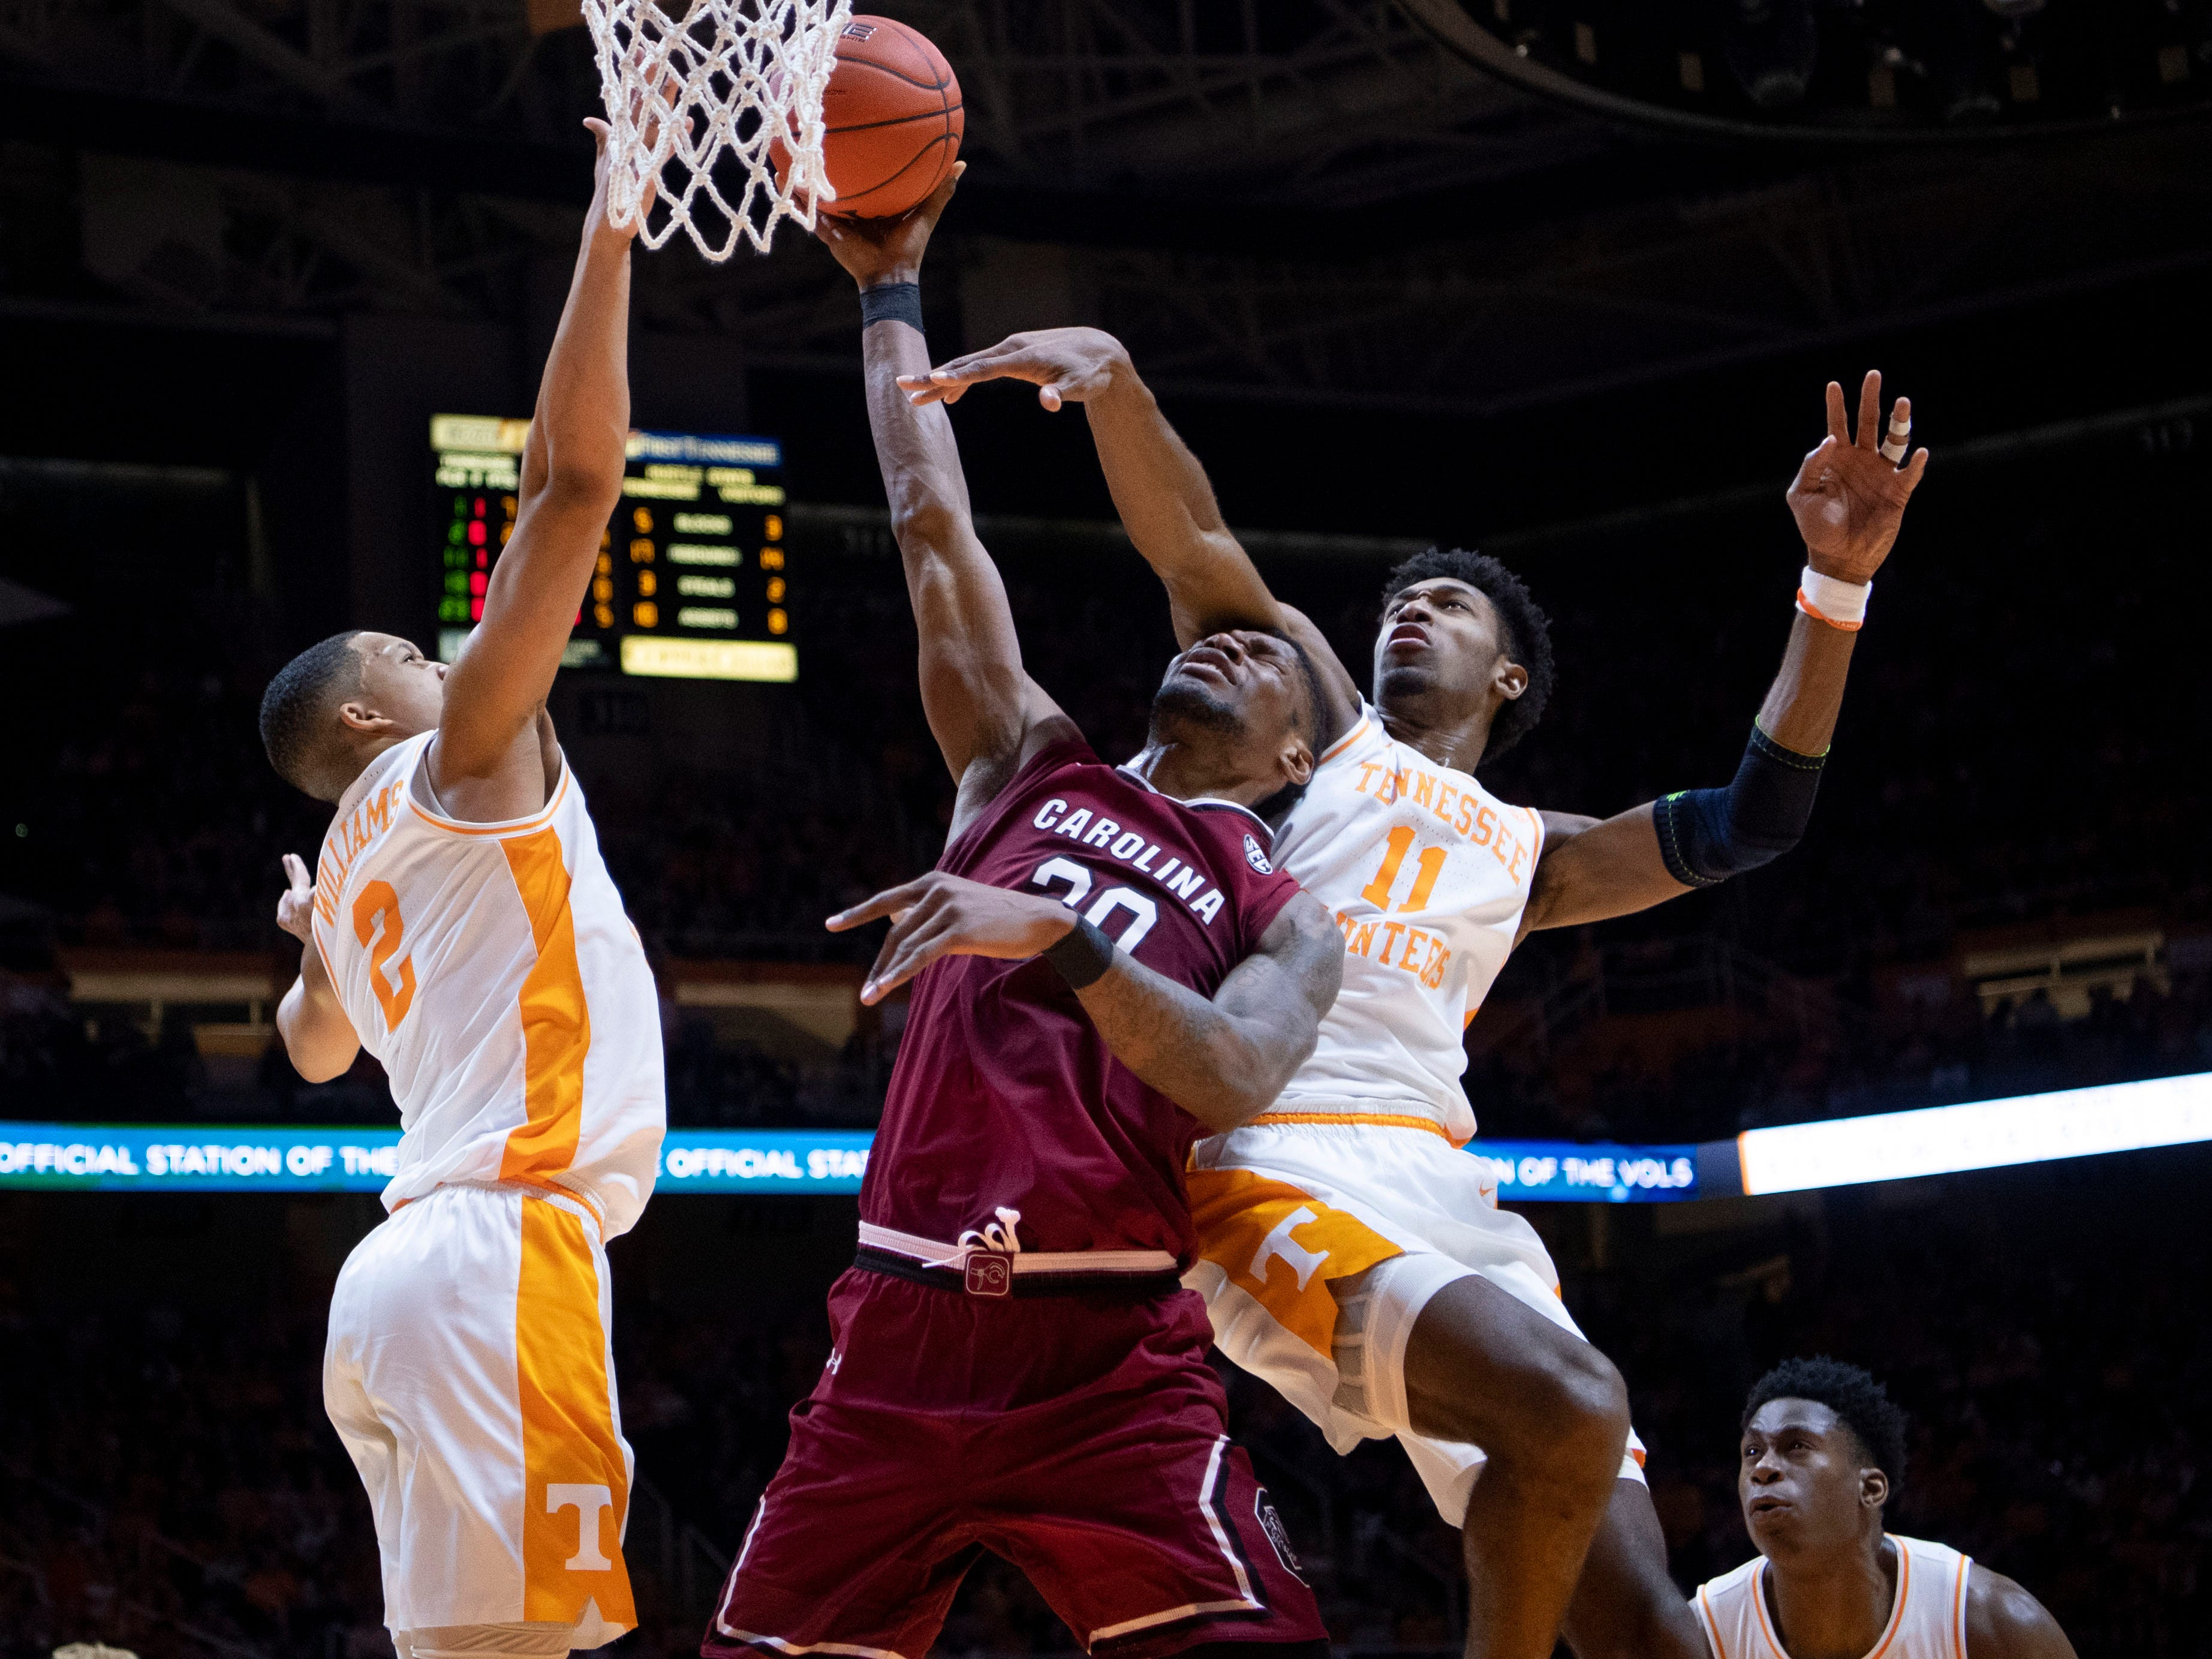 South Carolina forward Chris Silva (30) is guarded by Tennessee's Grant Williams (2) and Kyle Alexander (11) on Wednesday, February 13, 2019.